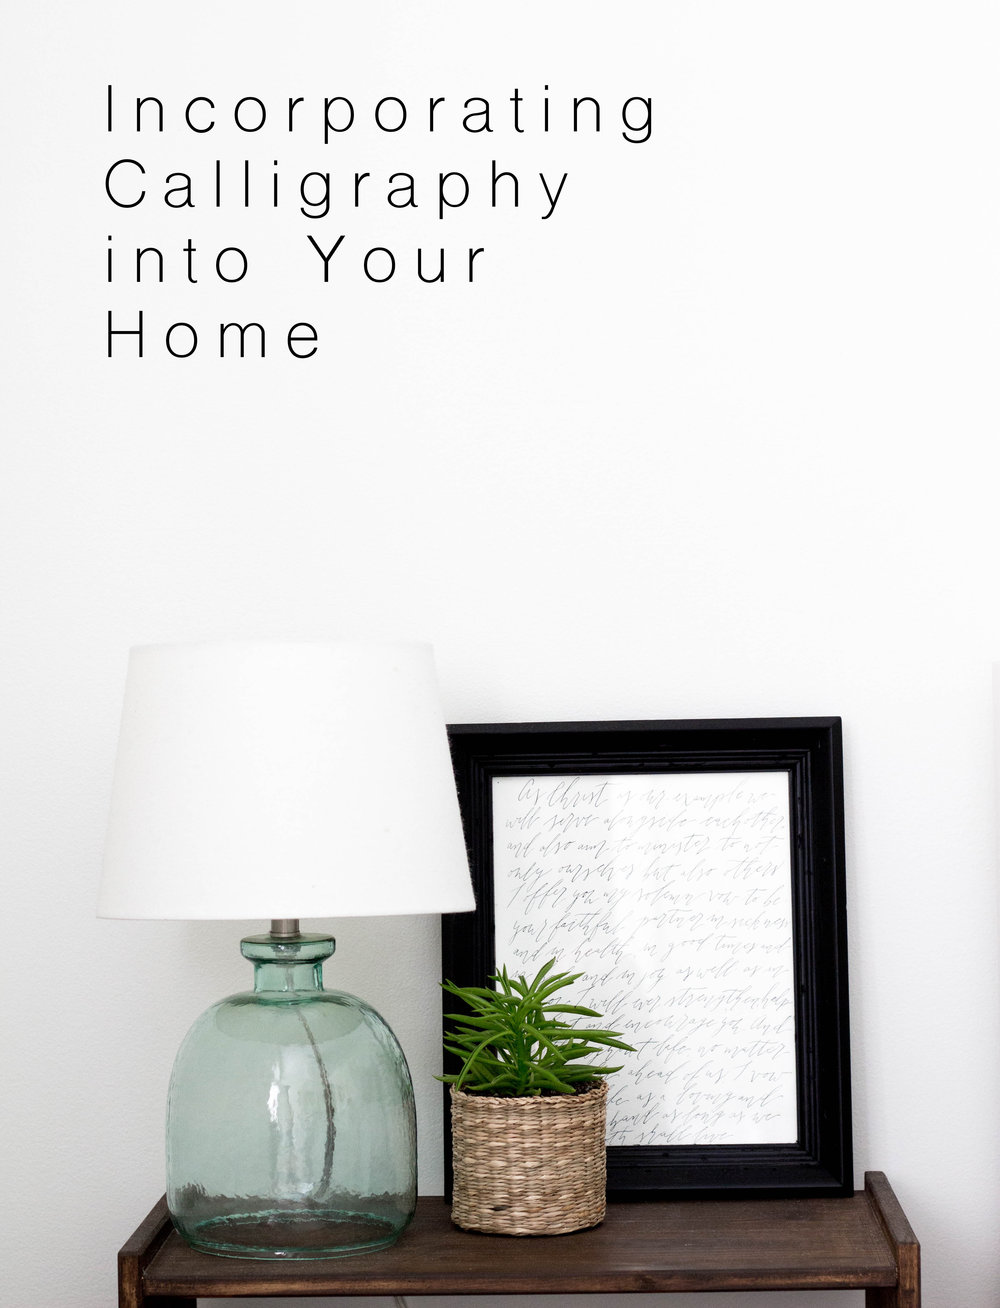 Examples of using Modern Calligraphy as Home Decor - True North Paper Co.